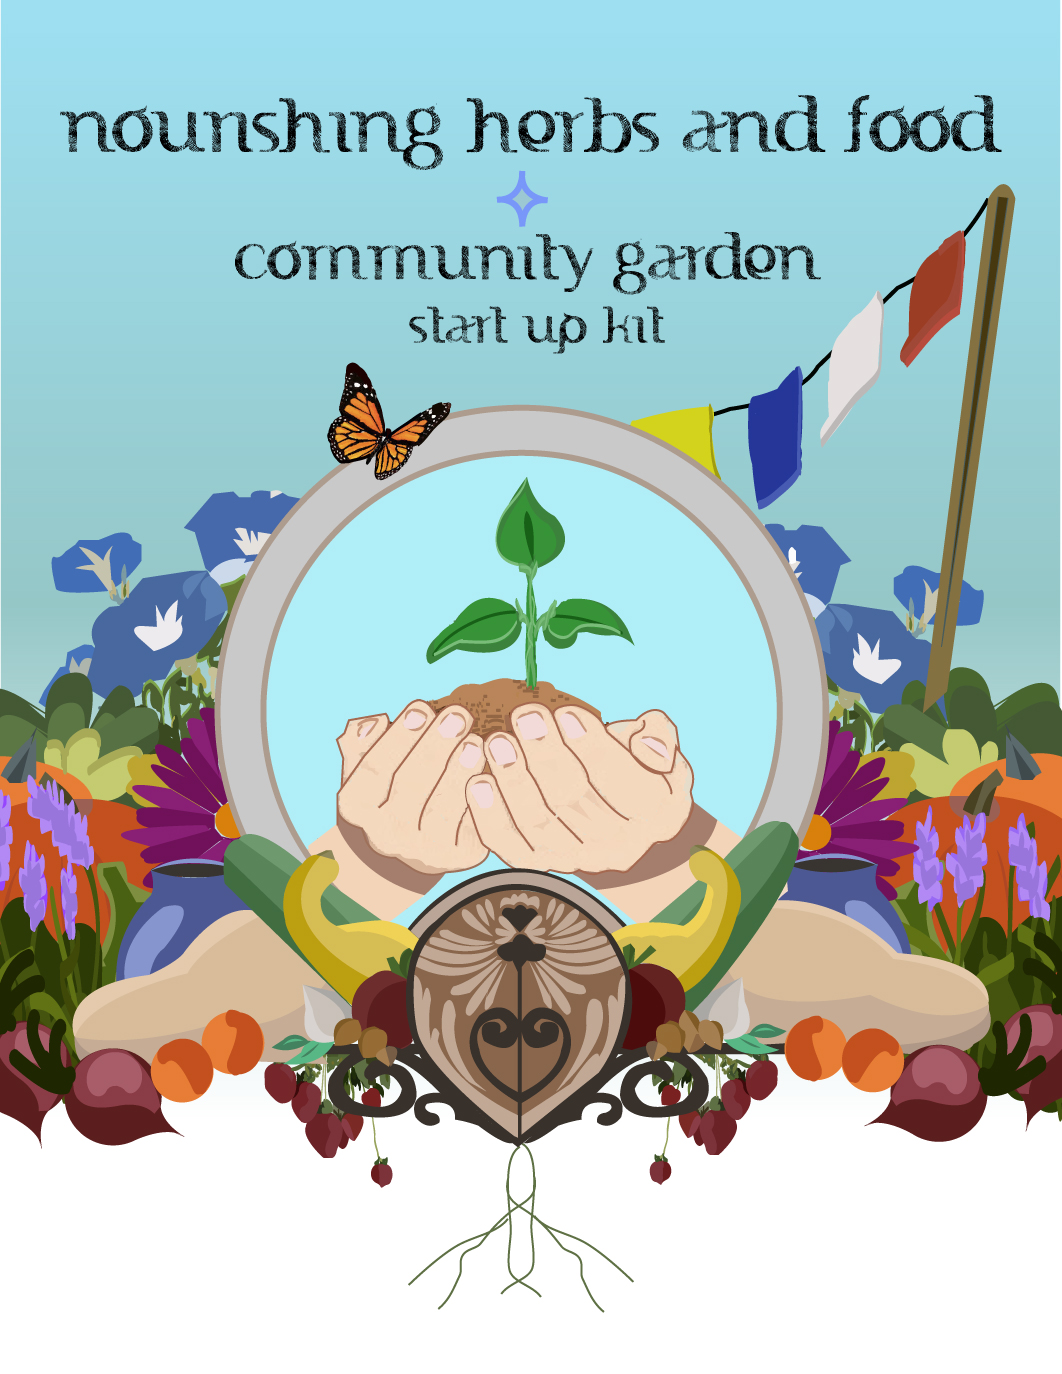 communitygardenkit.jpg